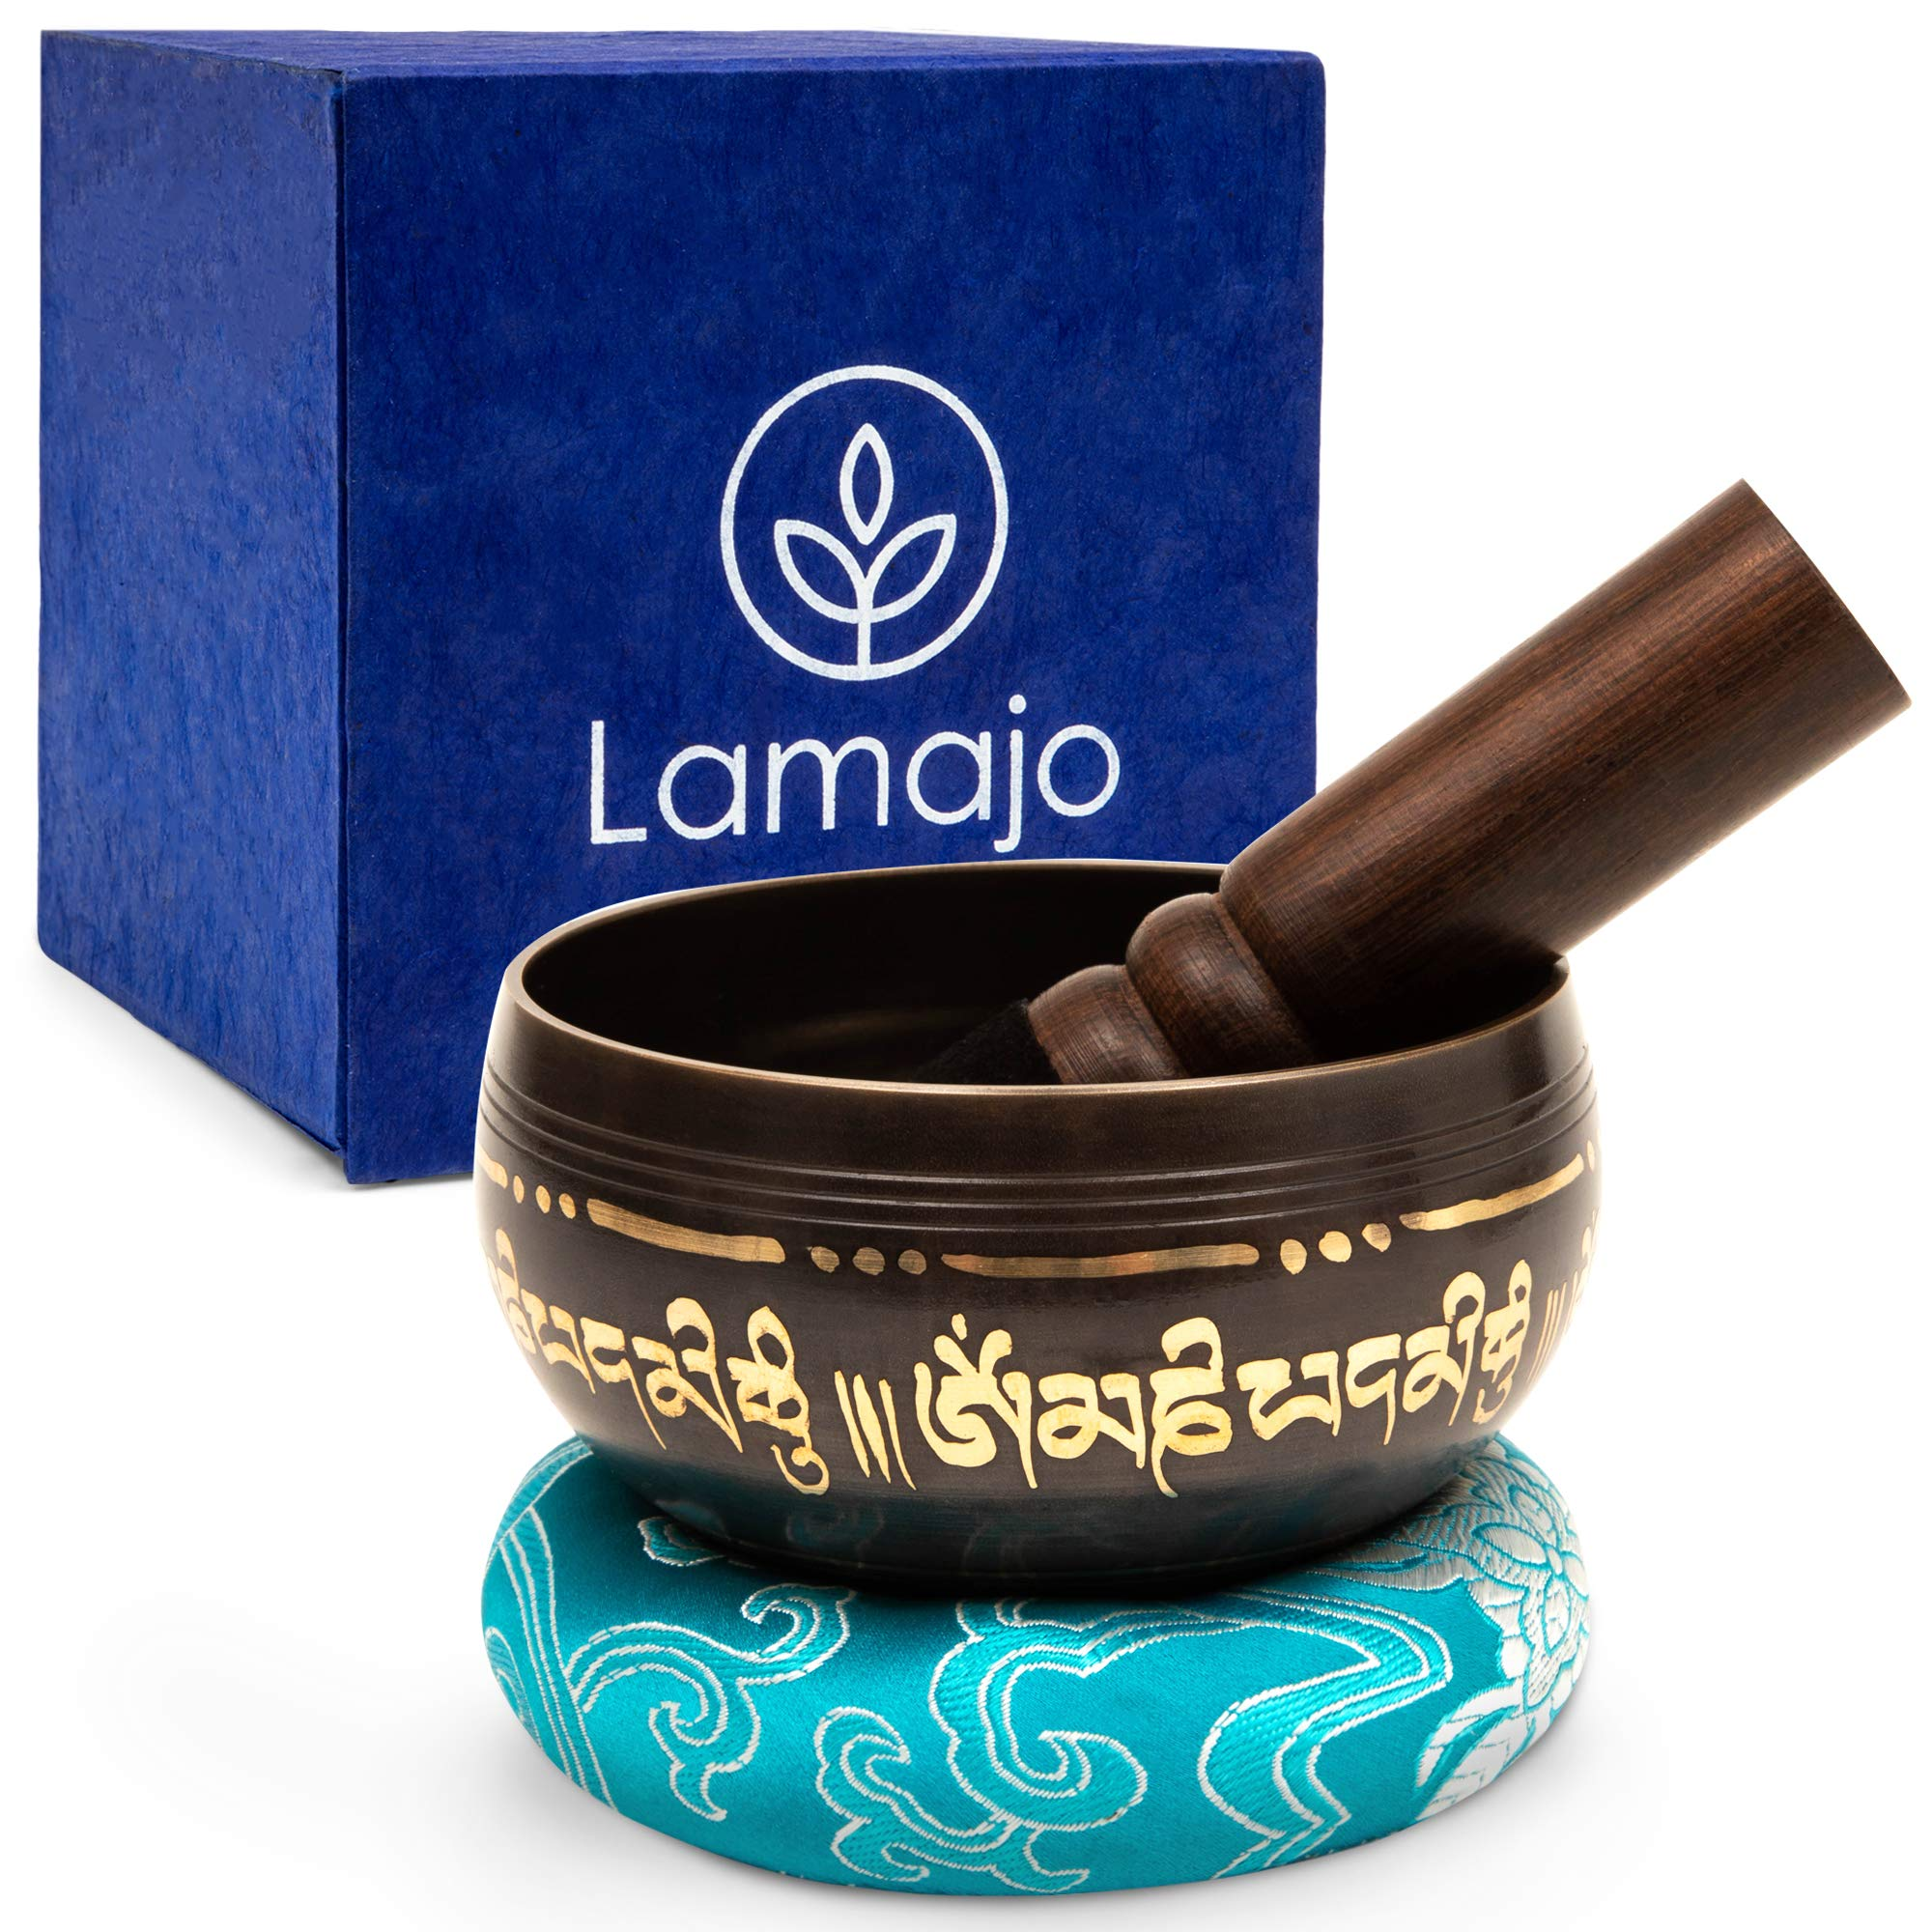 Lamajo Wellness ~ Tibetan Singing Bowl Set ~ with Mallet and Silk Cushion ~ Holistic Design ~ Musical Chiming Bowls ~ Beautiful Sound Bath Bowl Set for Meditation, Mindfulness, Chakra Healing and Yoga by Lamajo